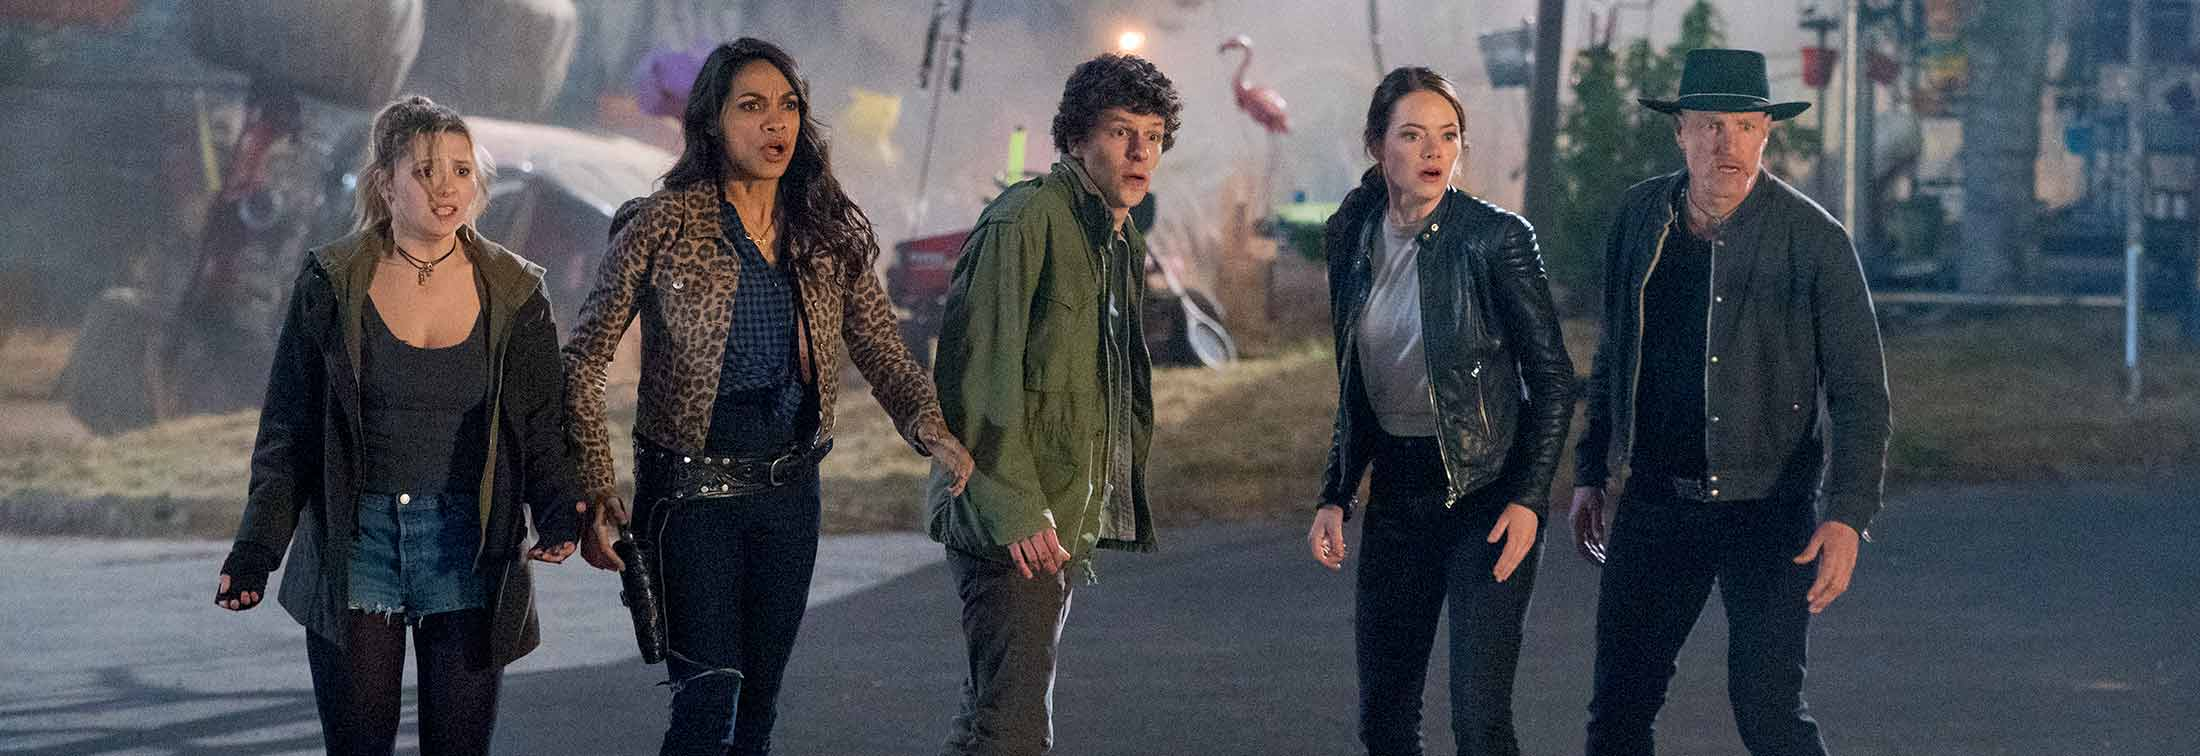 Zombieland: Double Tap - The gang's back for a brainless zombie comedy sequel